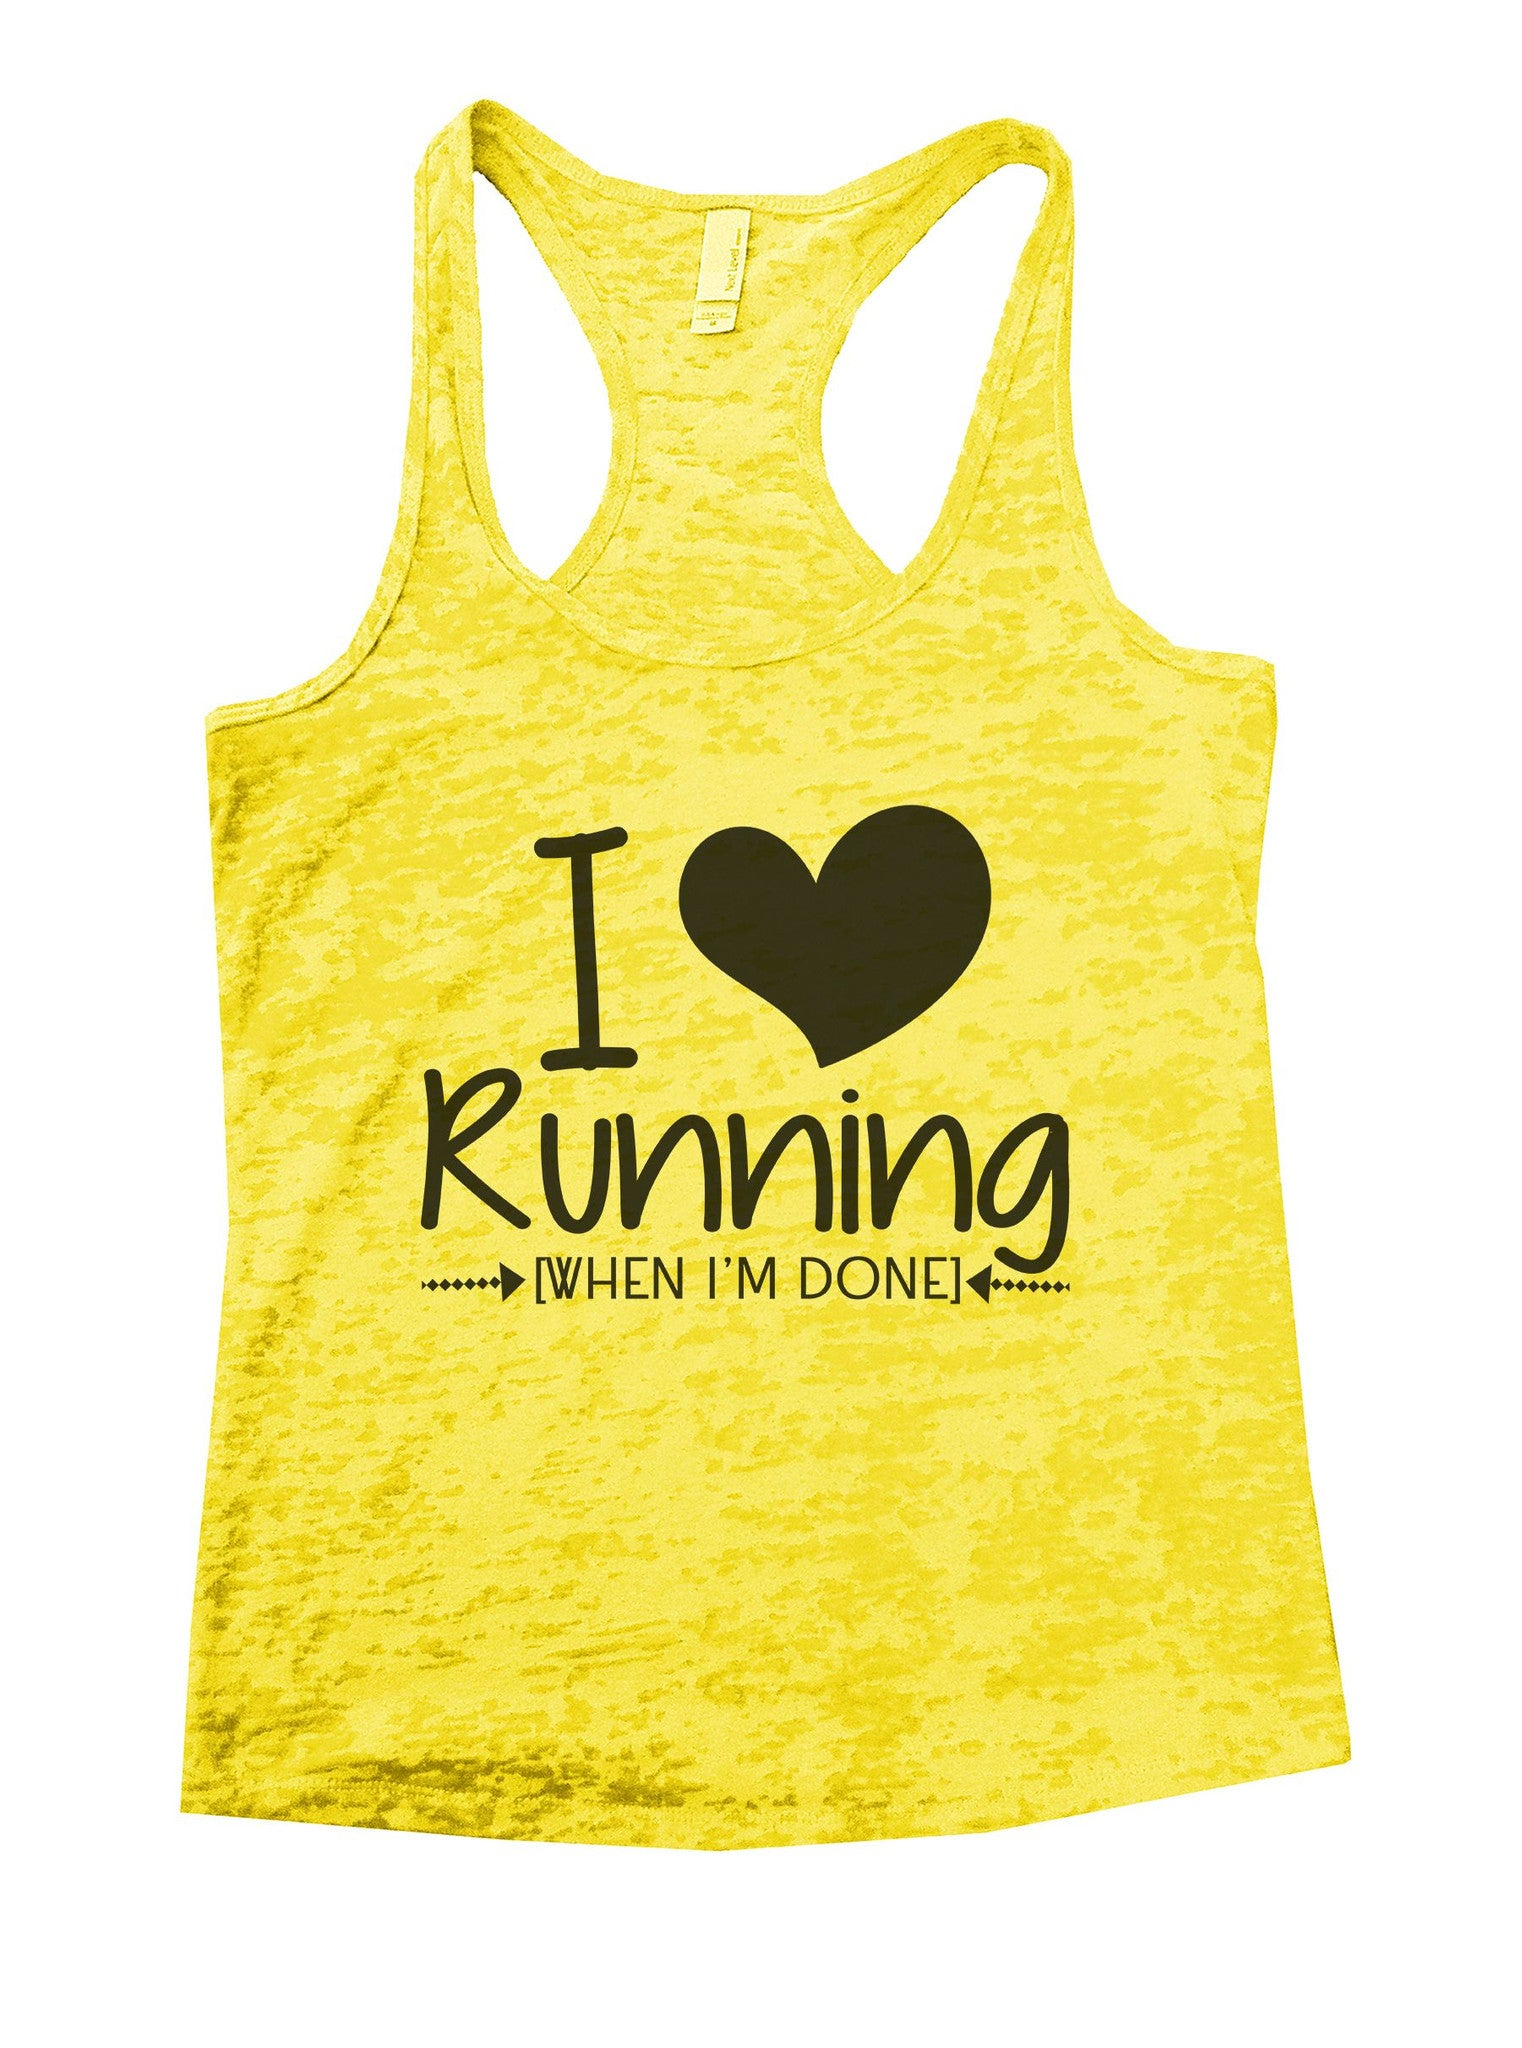 I Love Running [When I'm Done] Burnout Tank Top By BurnoutTankTops.com - 1013 - Funny Shirts Tank Tops Burnouts and Triblends  - 7